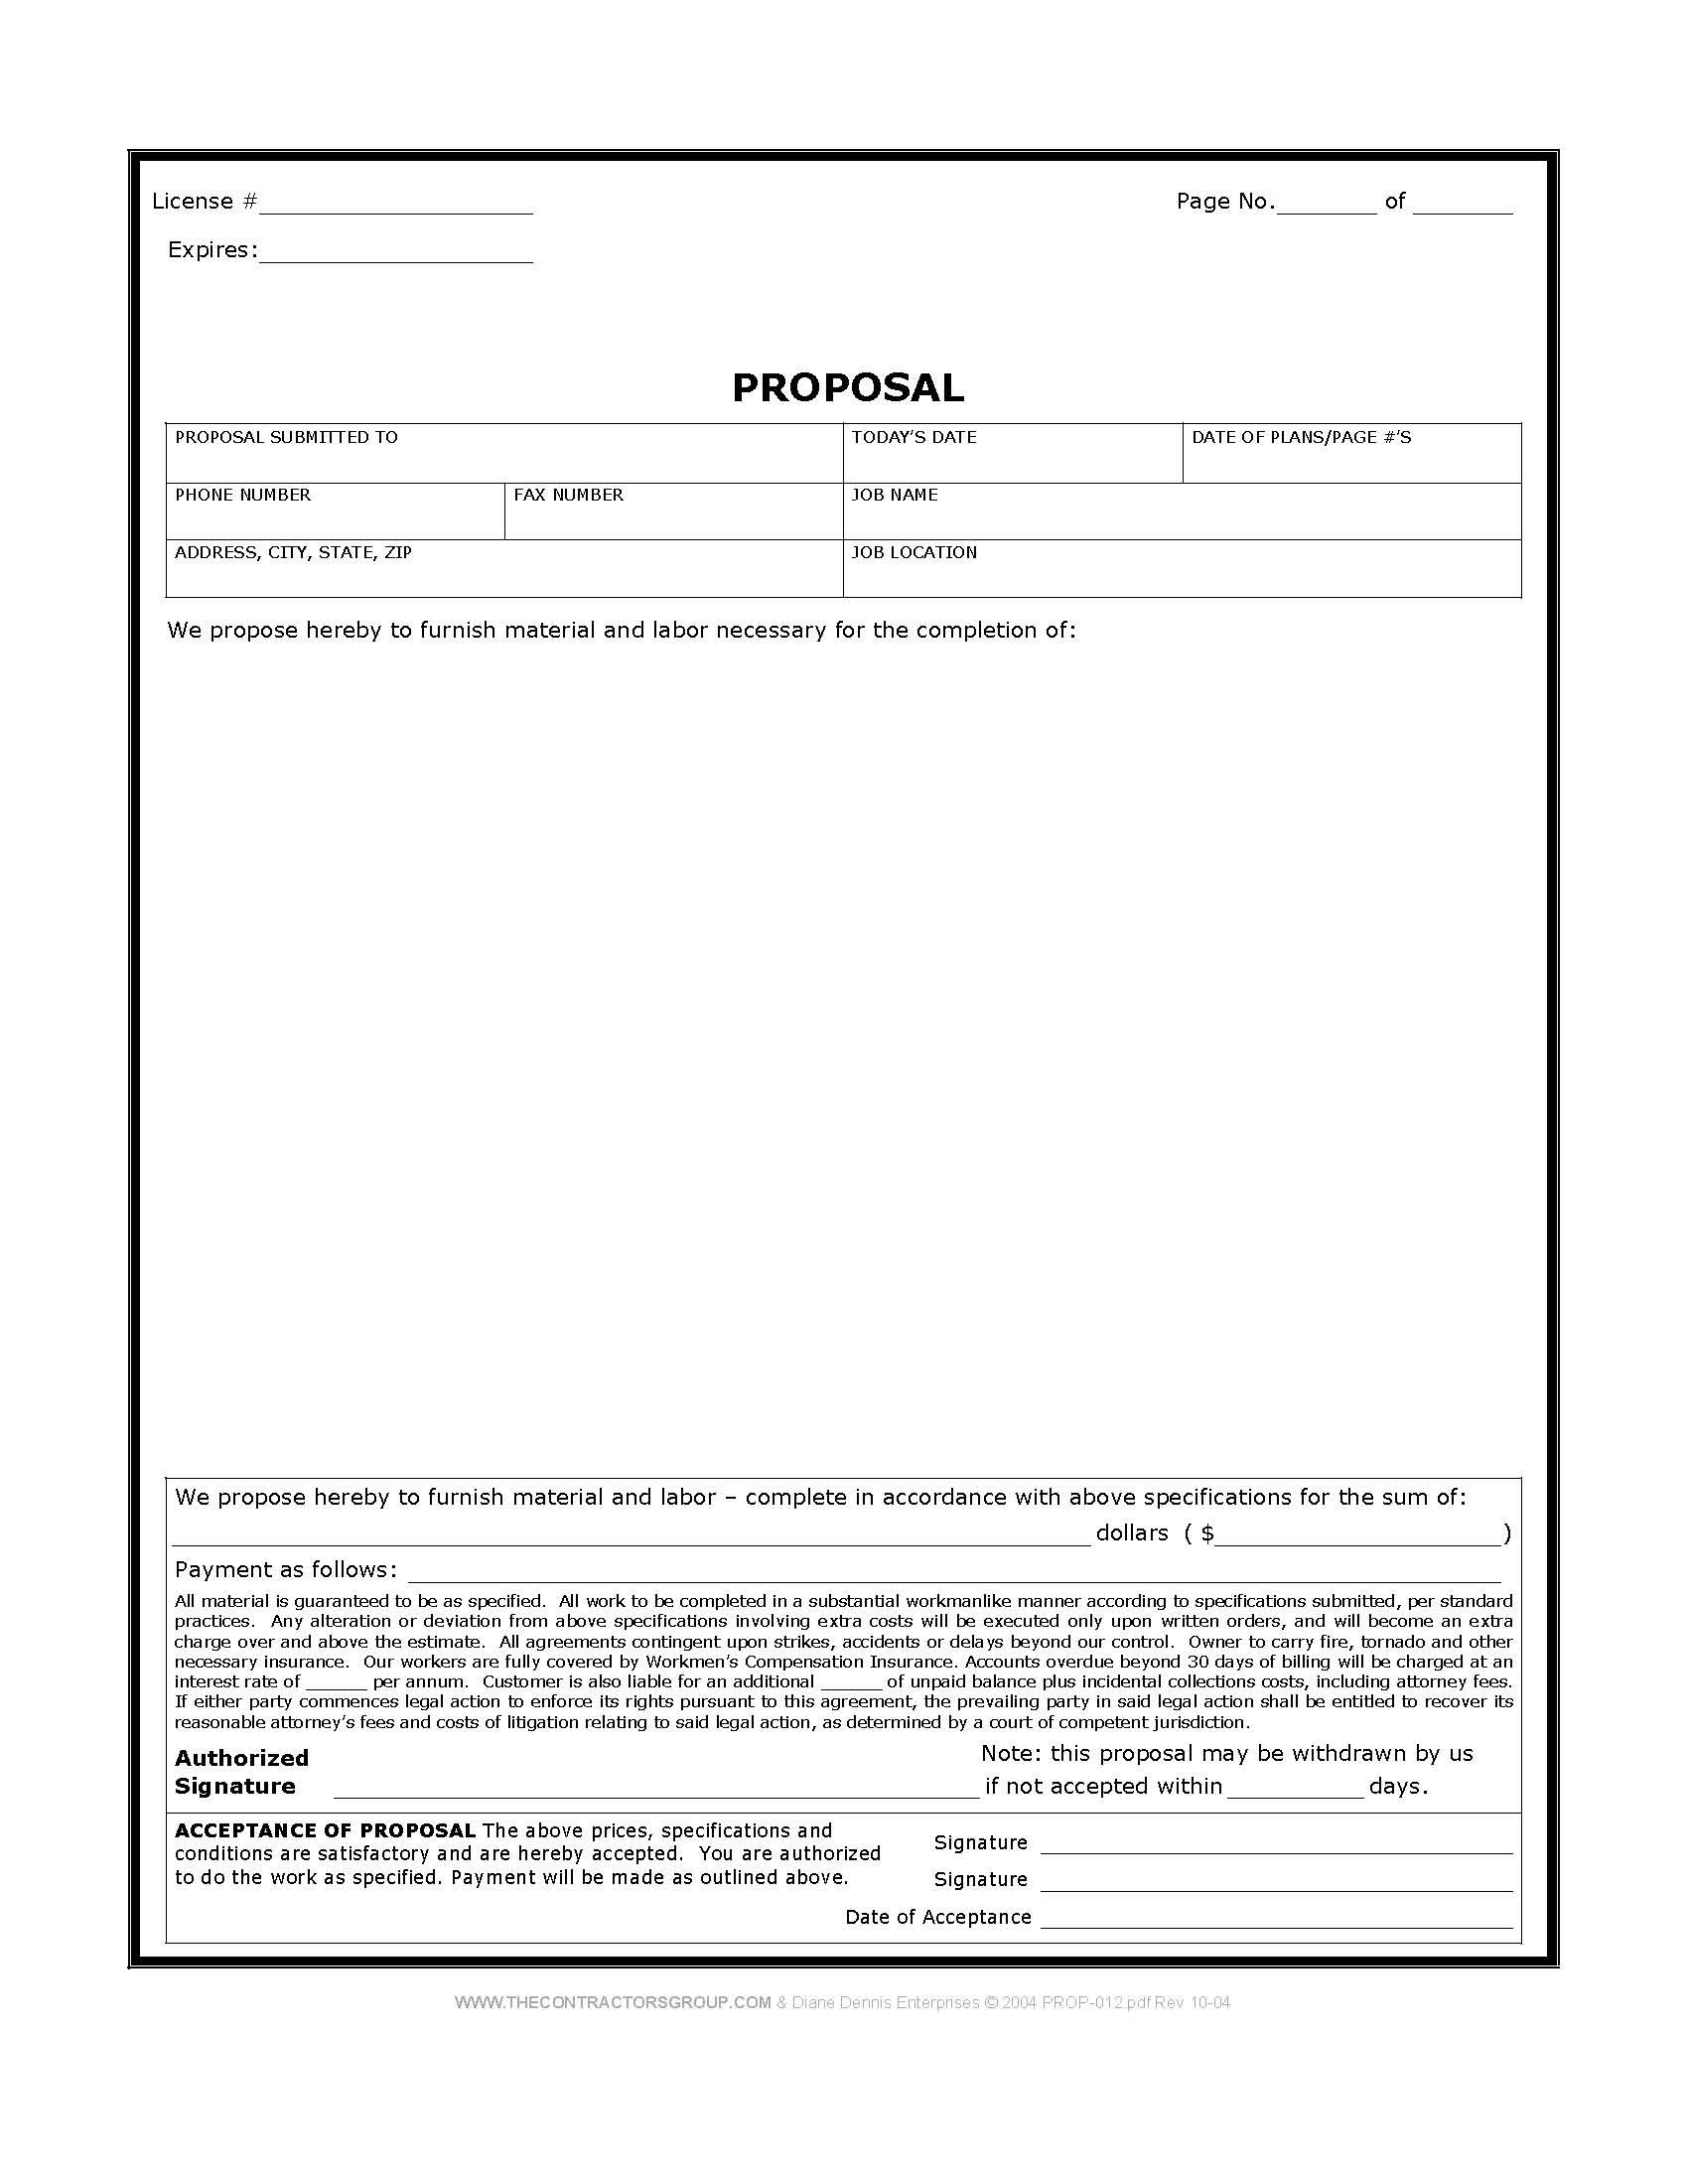 Free print contractor proposal forms construction proposal form free print contractor proposal forms construction proposal form bid form estimate form style altavistaventures